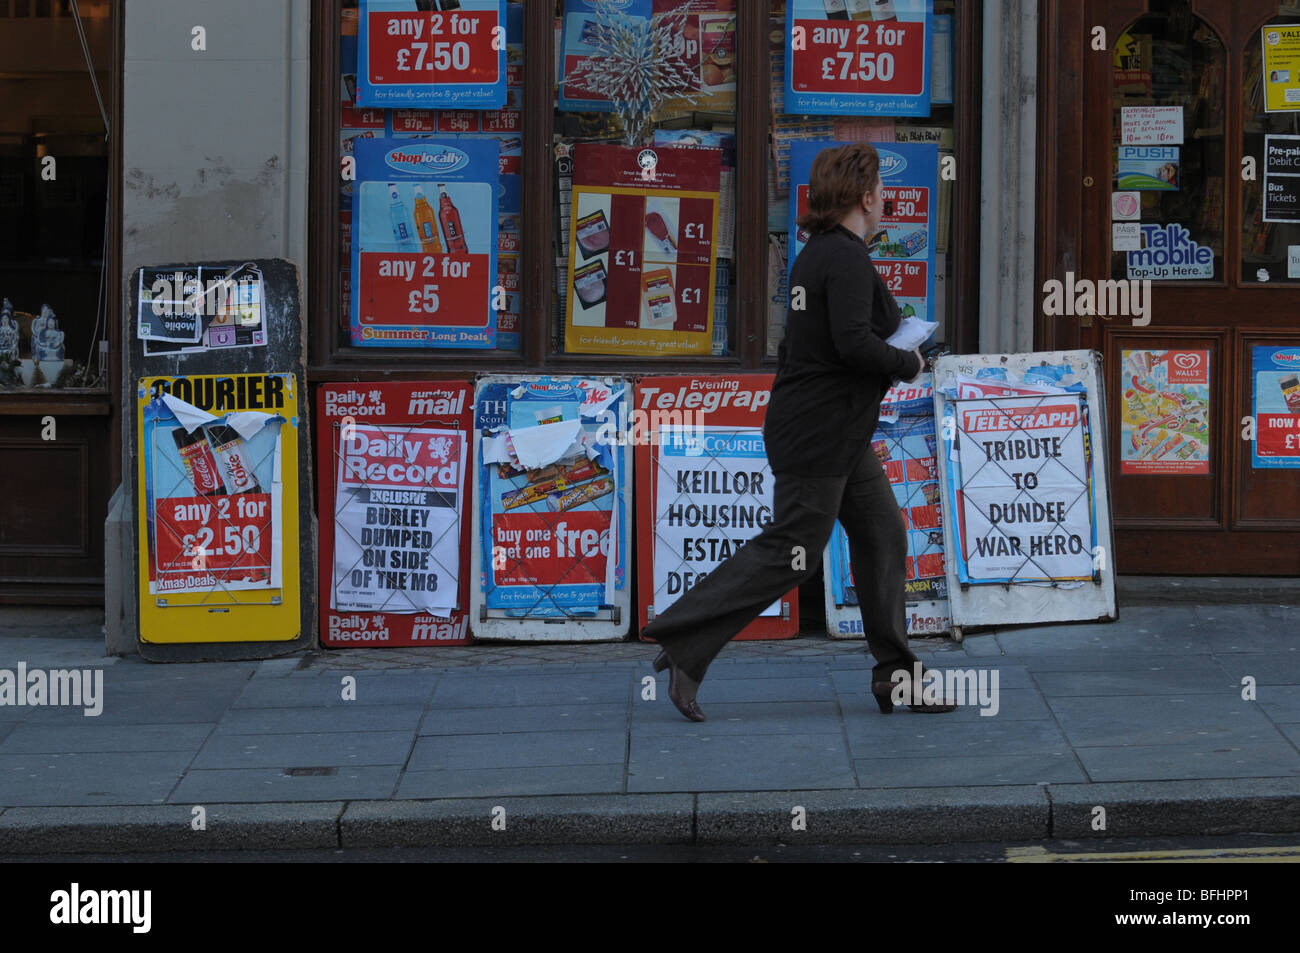 Newspaper headlines on advertising boards outside a newsagent. - Stock Image